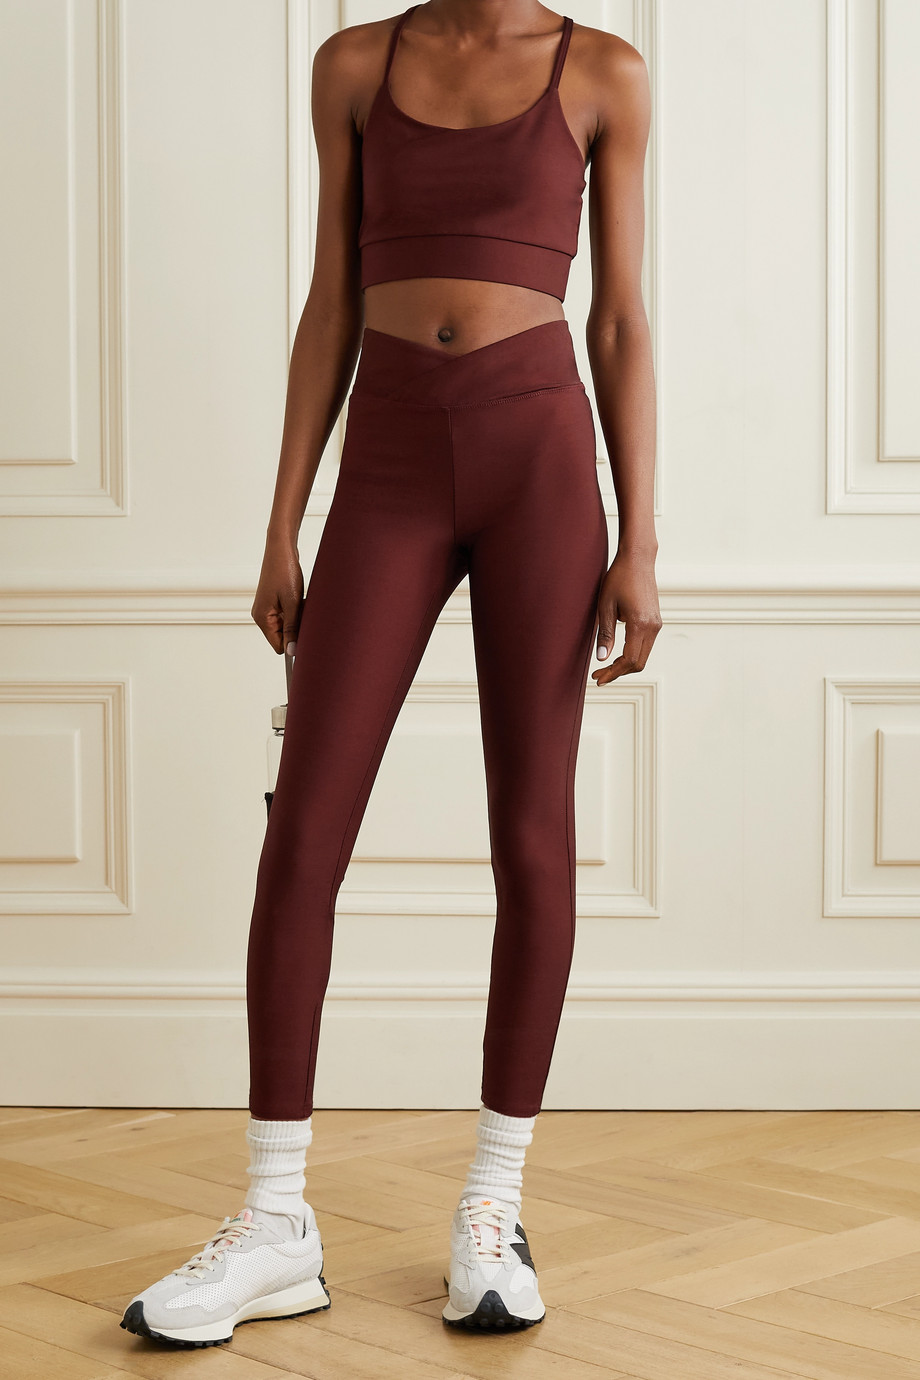 TWENTY Montréal Colorsphere stretch sports bra